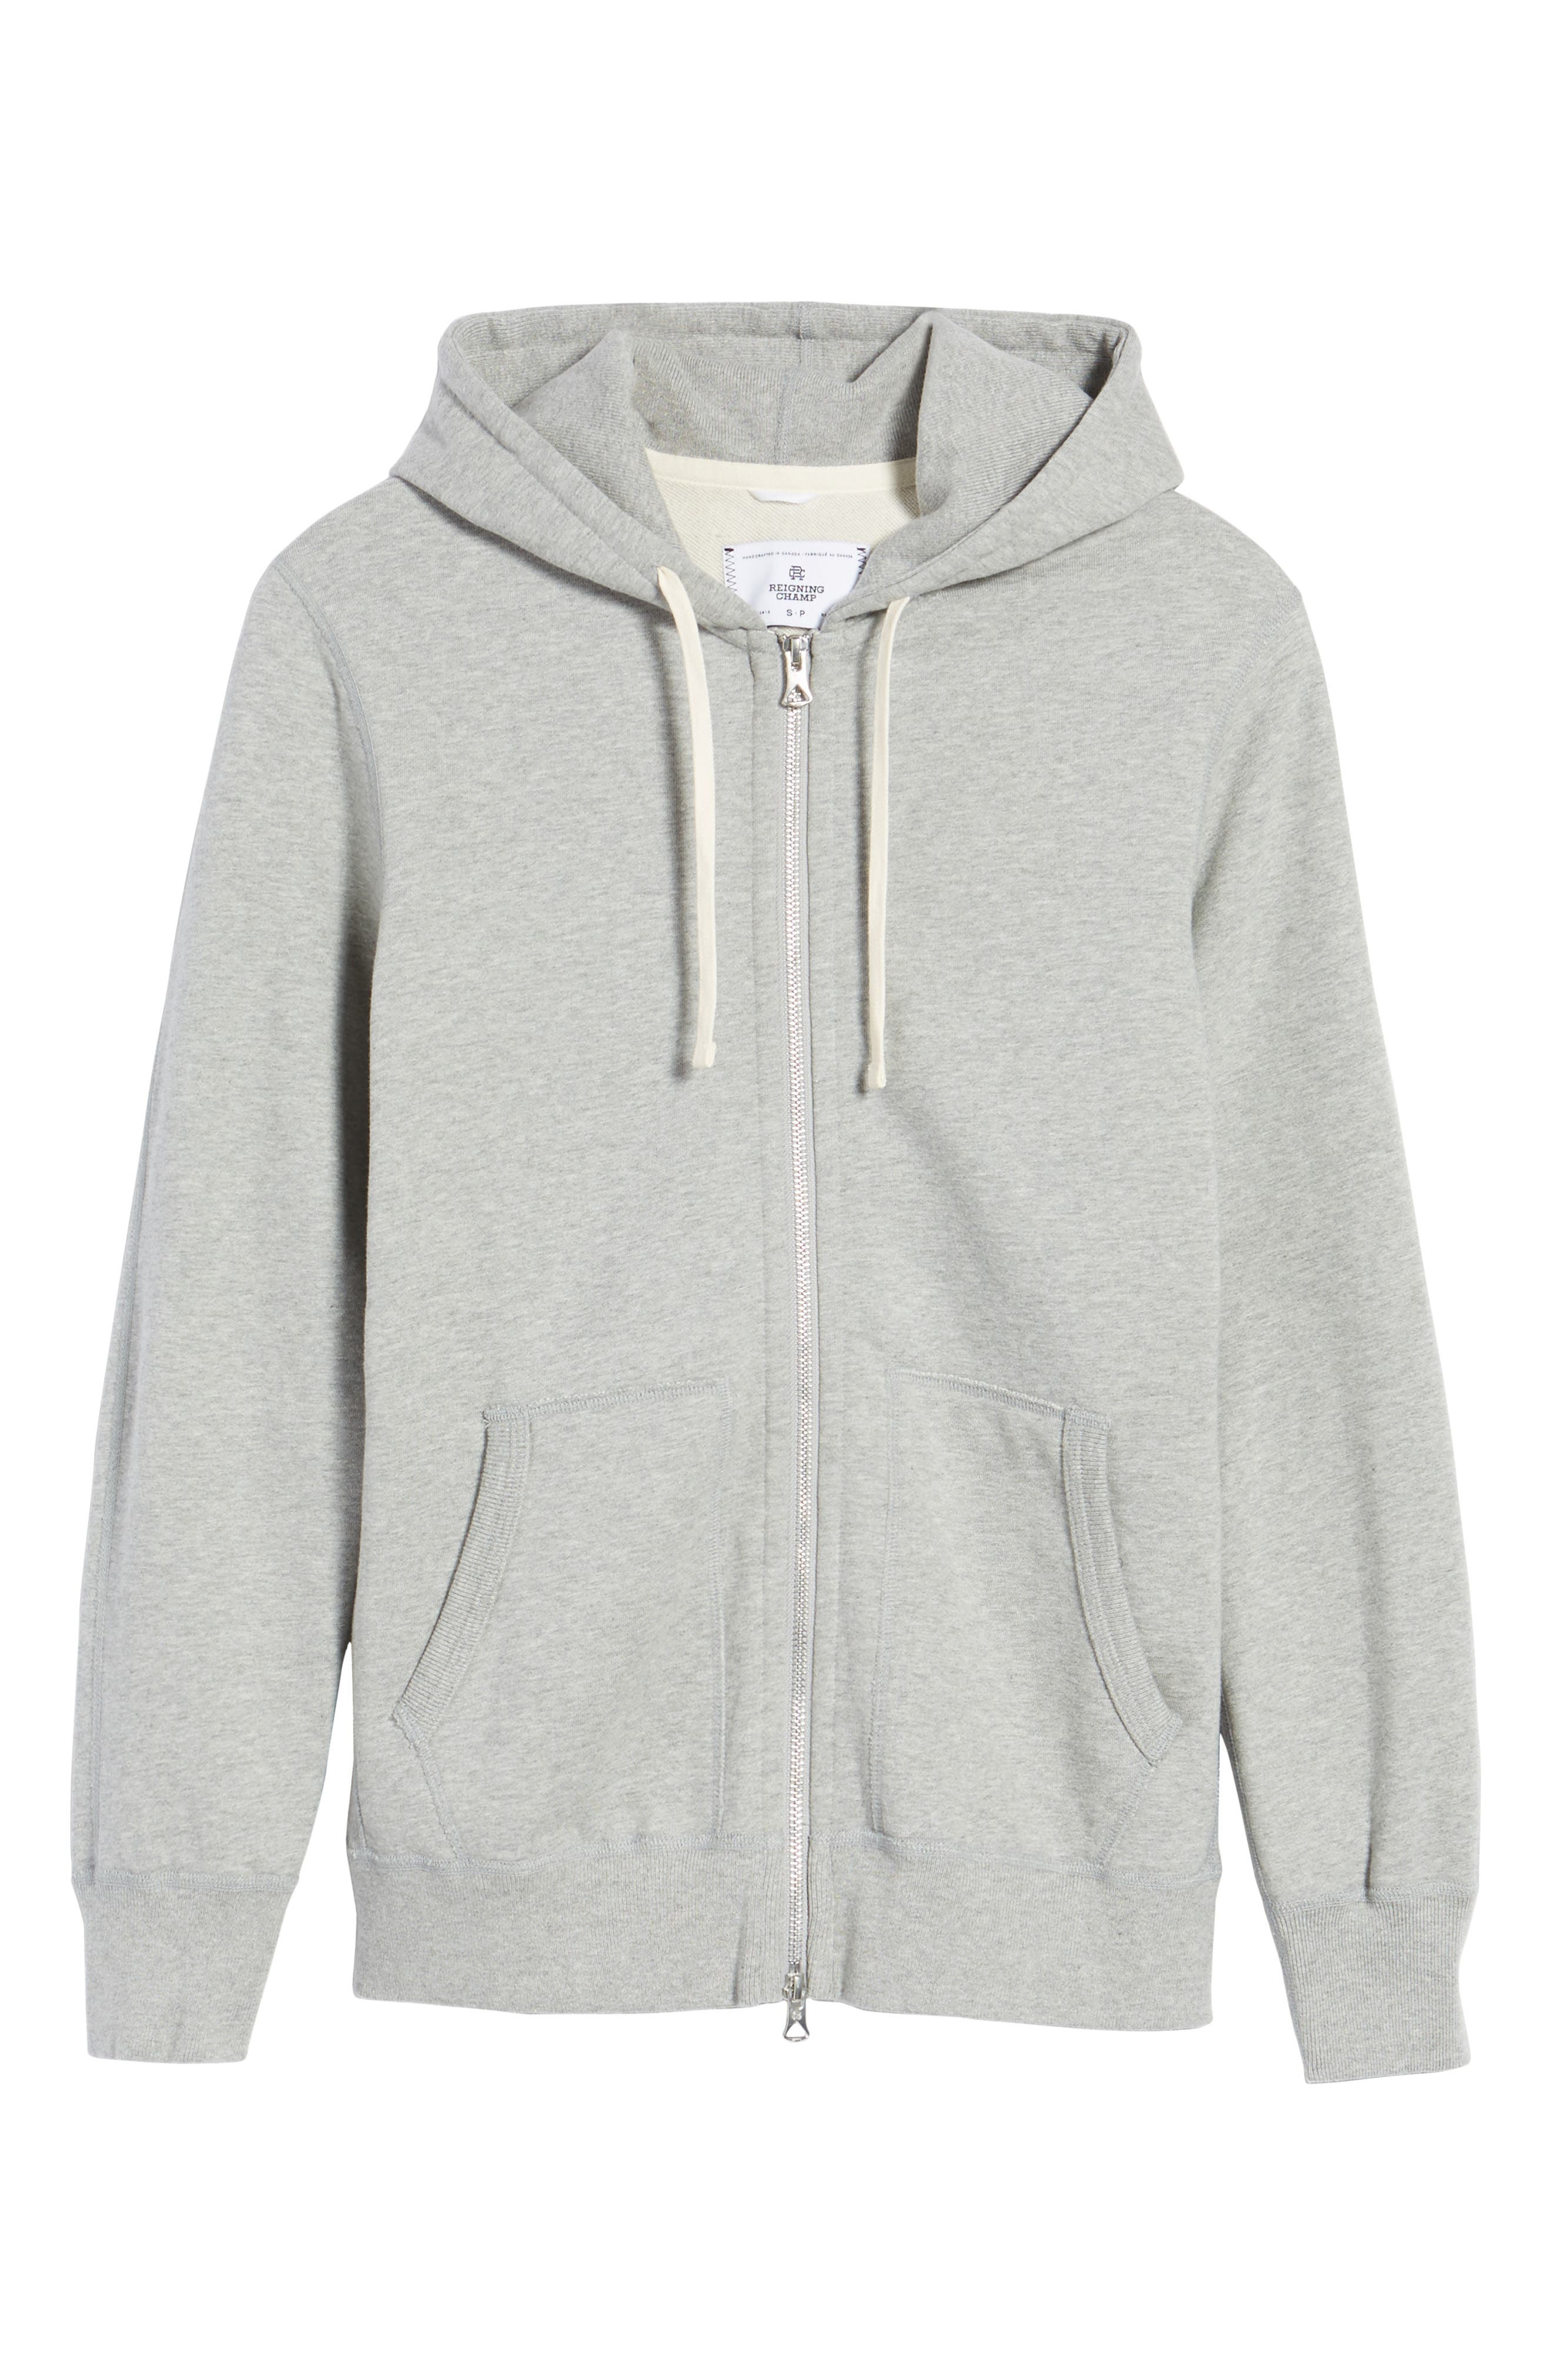 REIGNING CHAMP, Trim Fit Full Zip Hoodie, Main thumbnail 1, color, HEATHER GREY